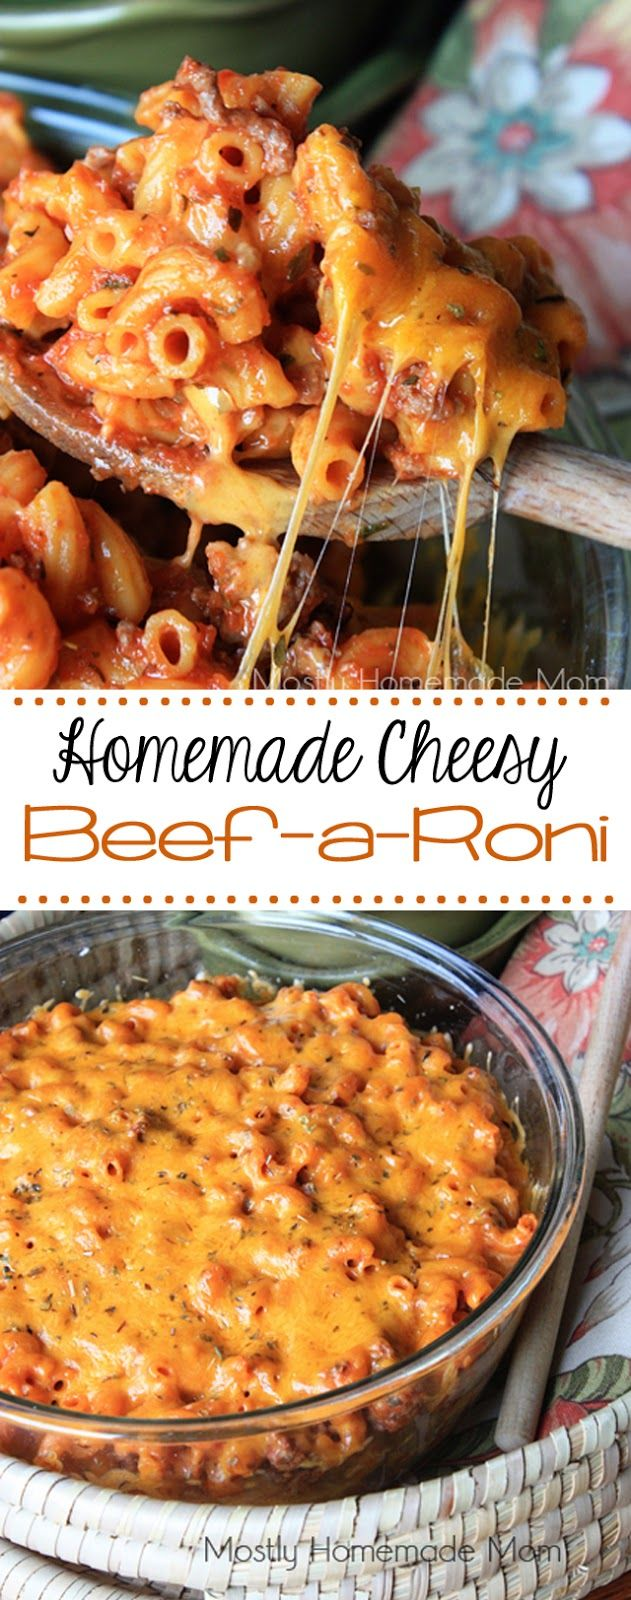 Homemade Cheesy Beefaroni - an amazing tomato meat sauce combined with elbow macaroni noodles and layers of gooey cheddar cheese - get your family gathered around the table again!